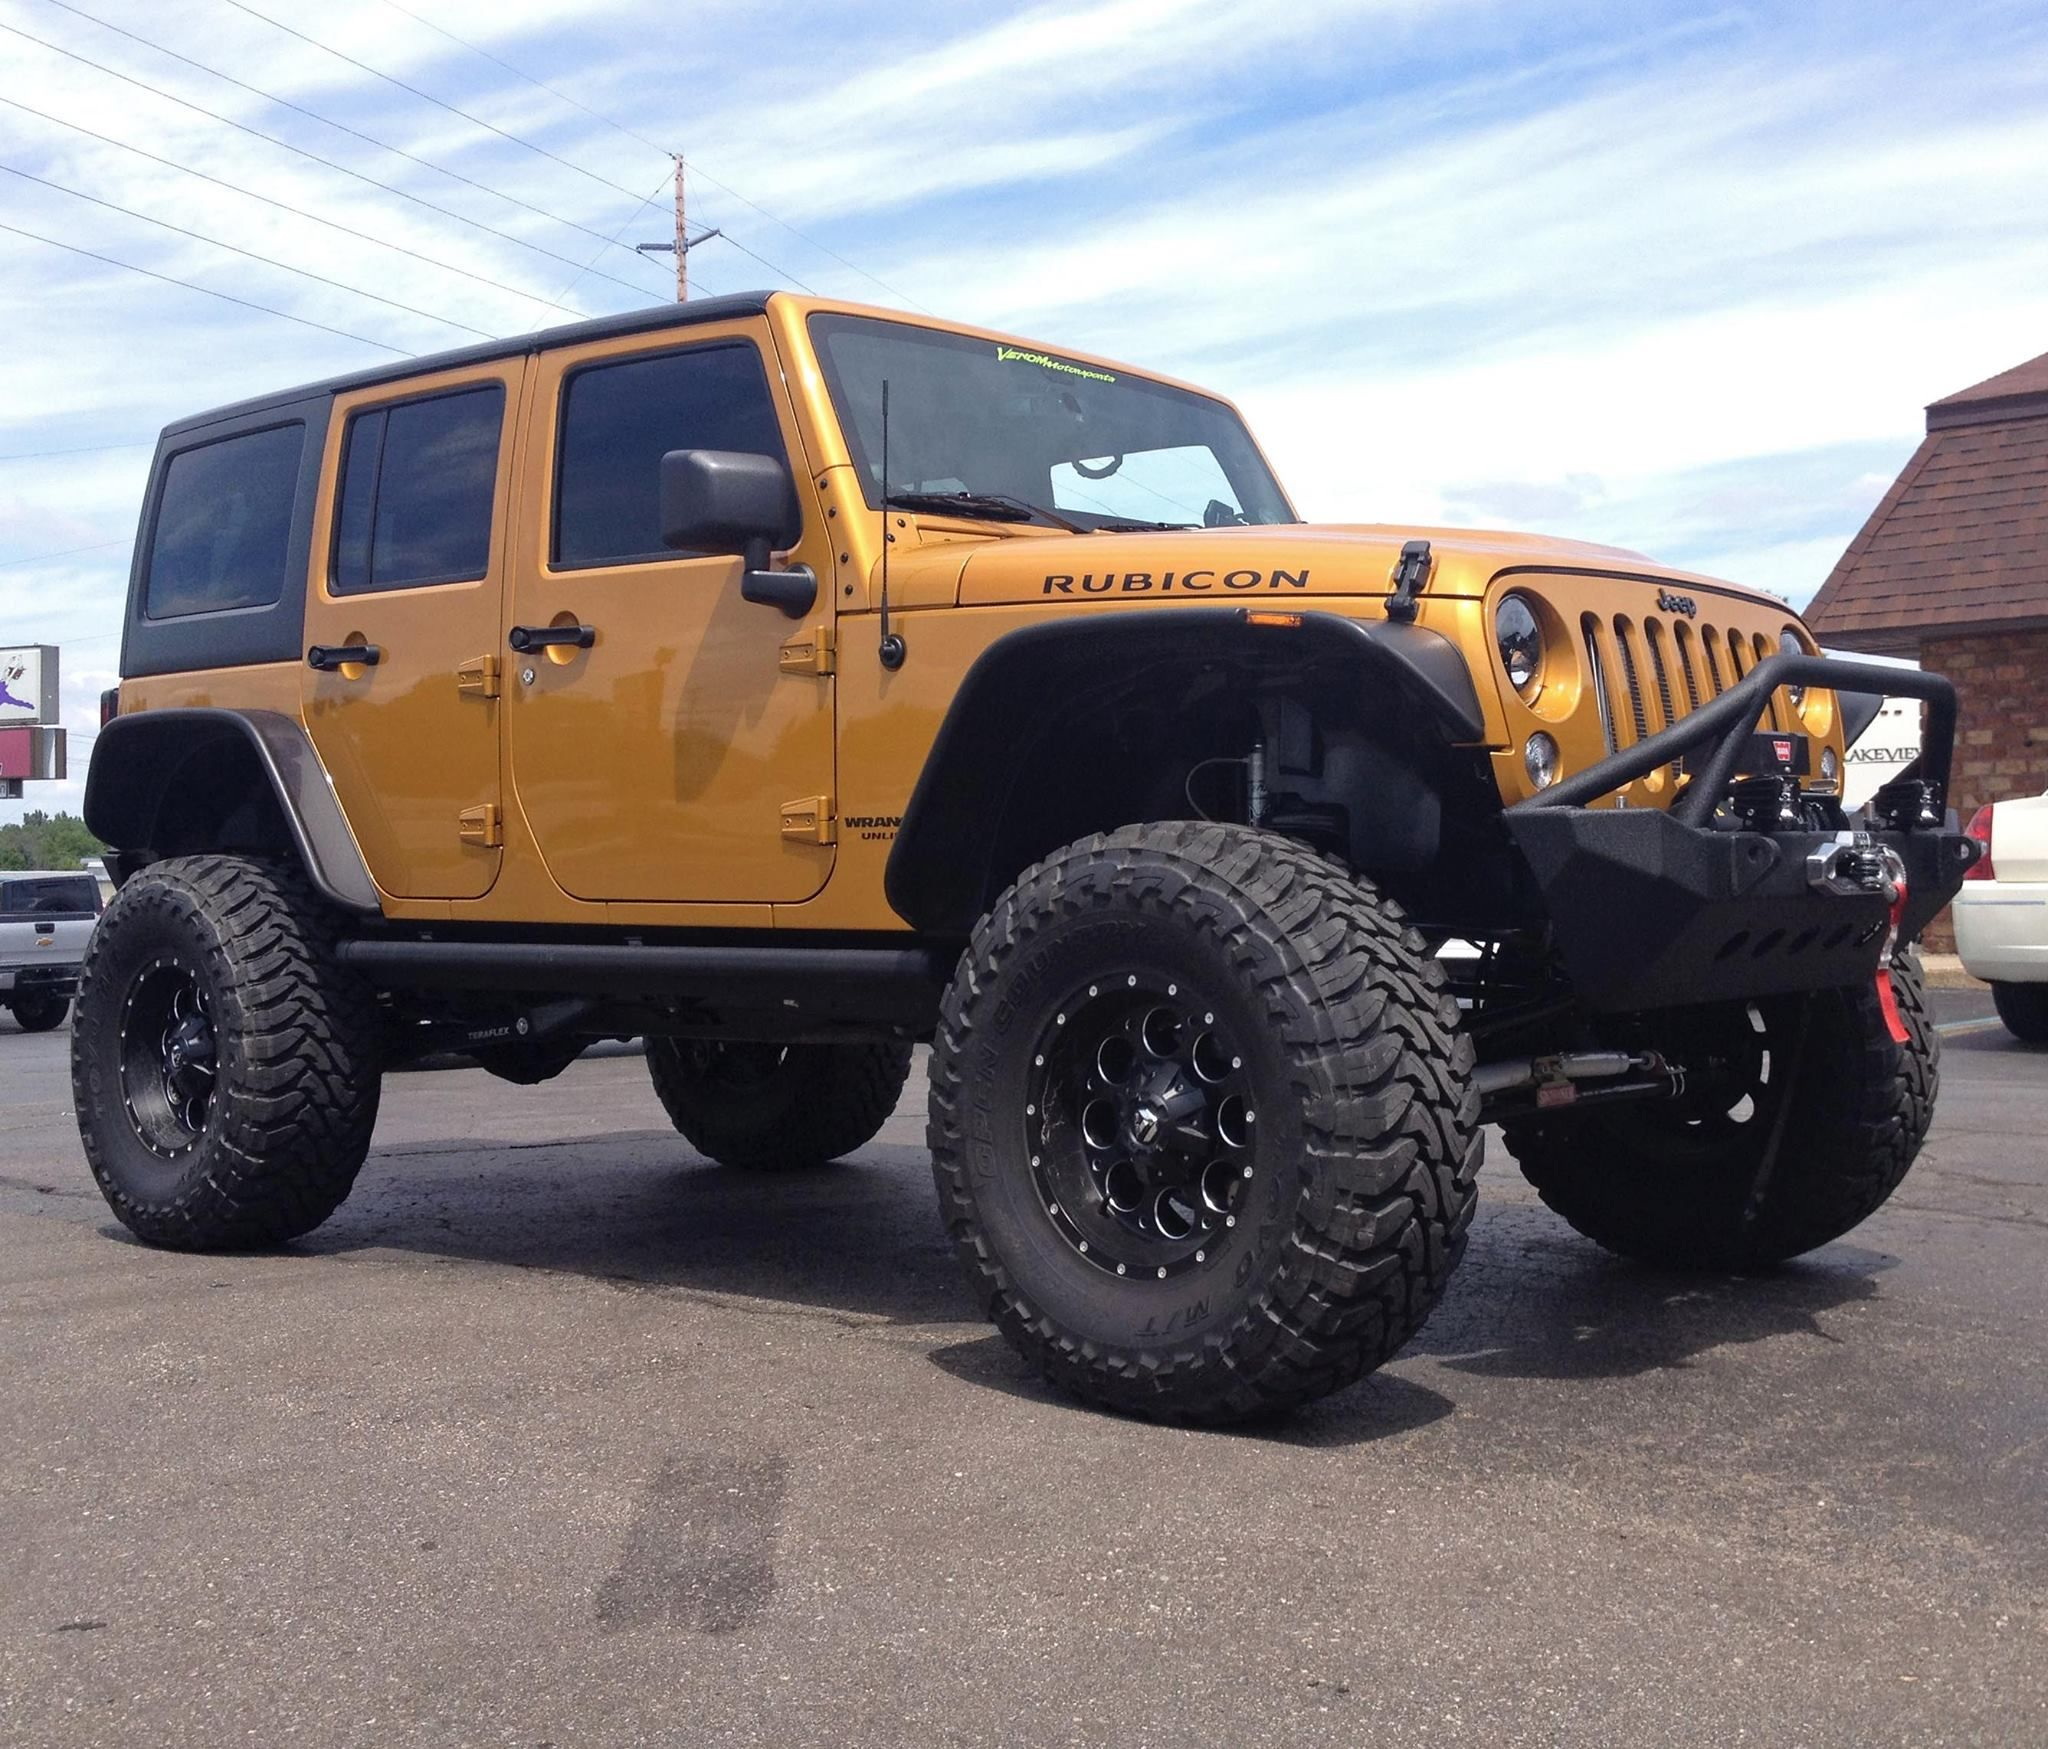 Lifted Jeeps Offroad Jeeps Jeep Builds Custom Jeeps Michigan